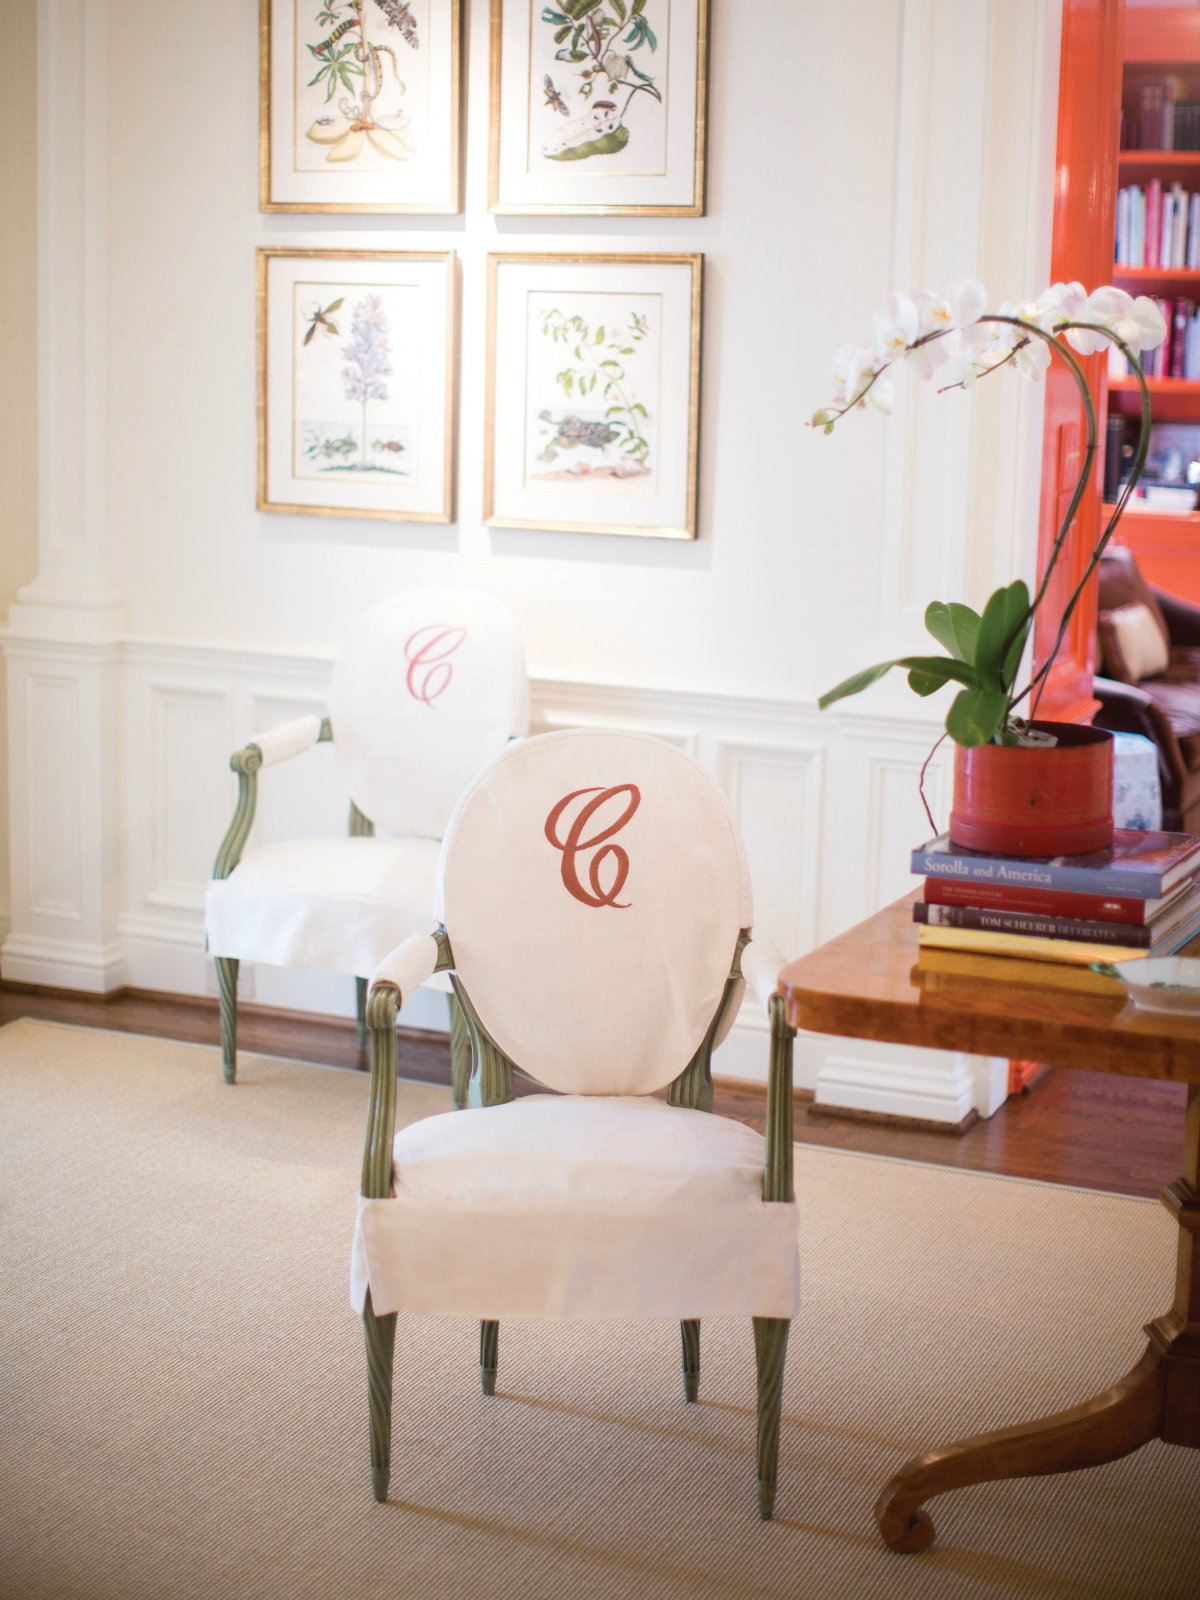 Monogrammed chair slip cover